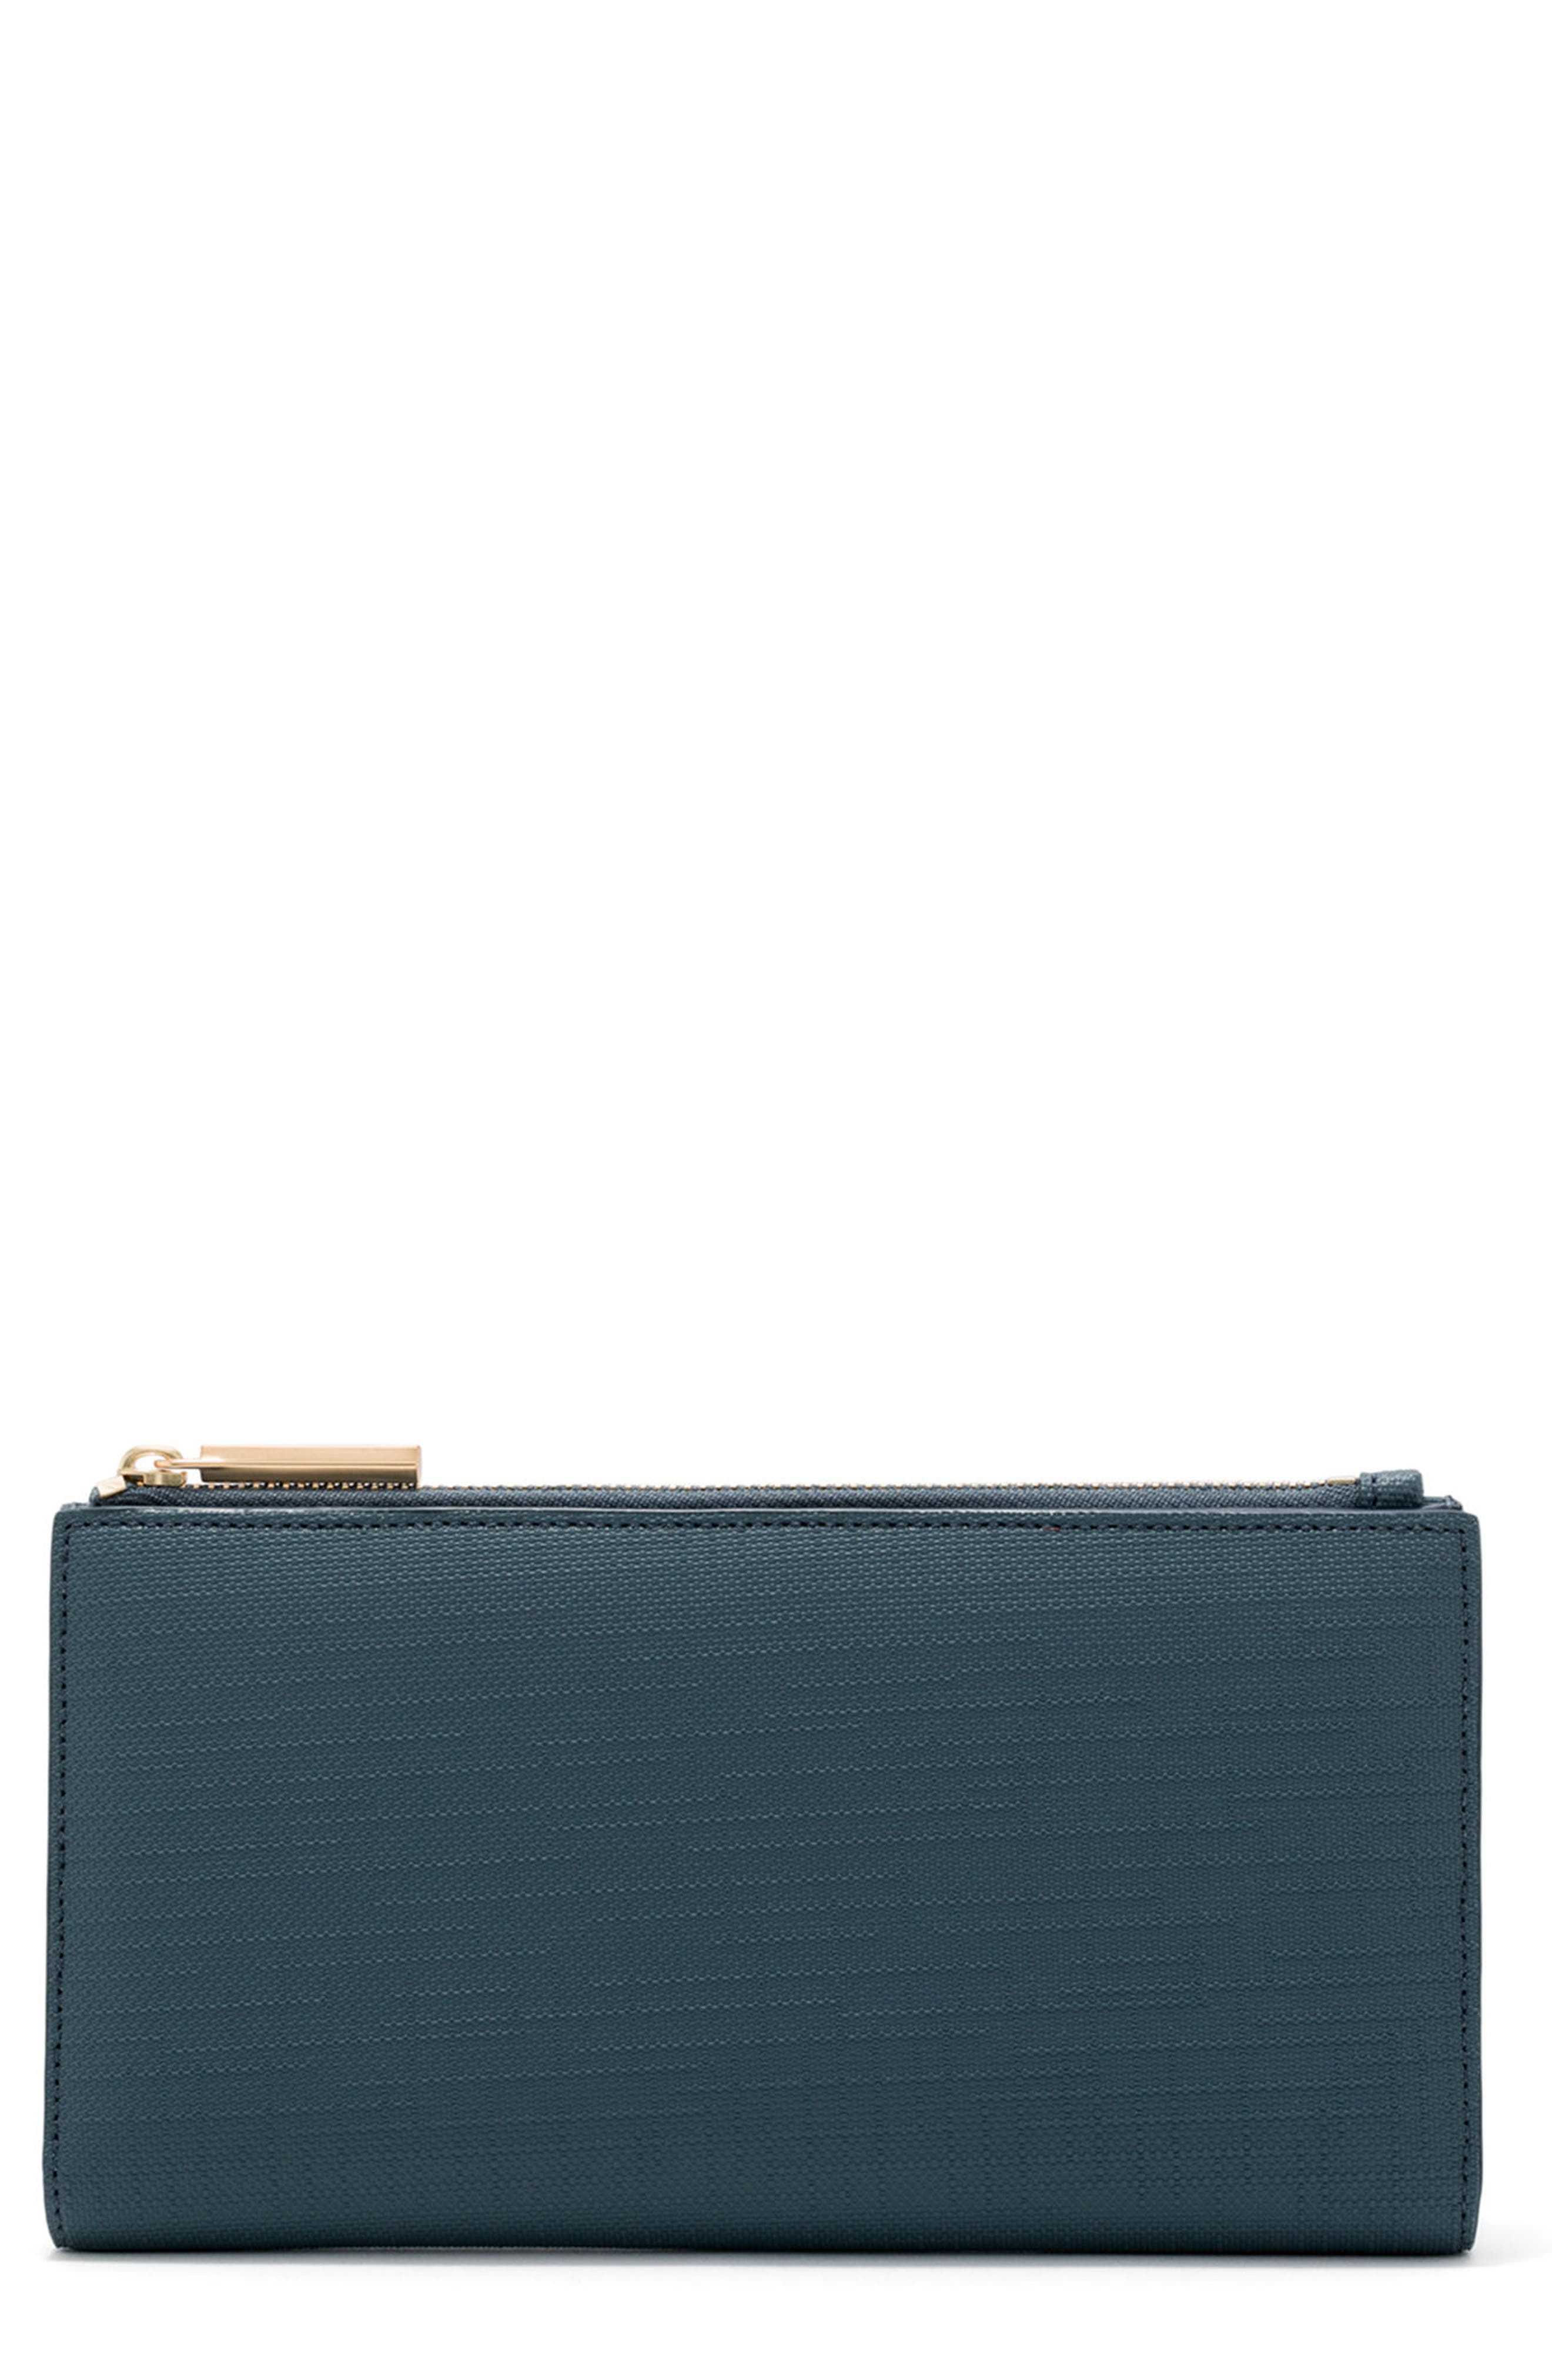 DAGNE DOVER, Signature Slim Coated Canvas Wallet, Main thumbnail 1, color, BLEECKER BLUSH